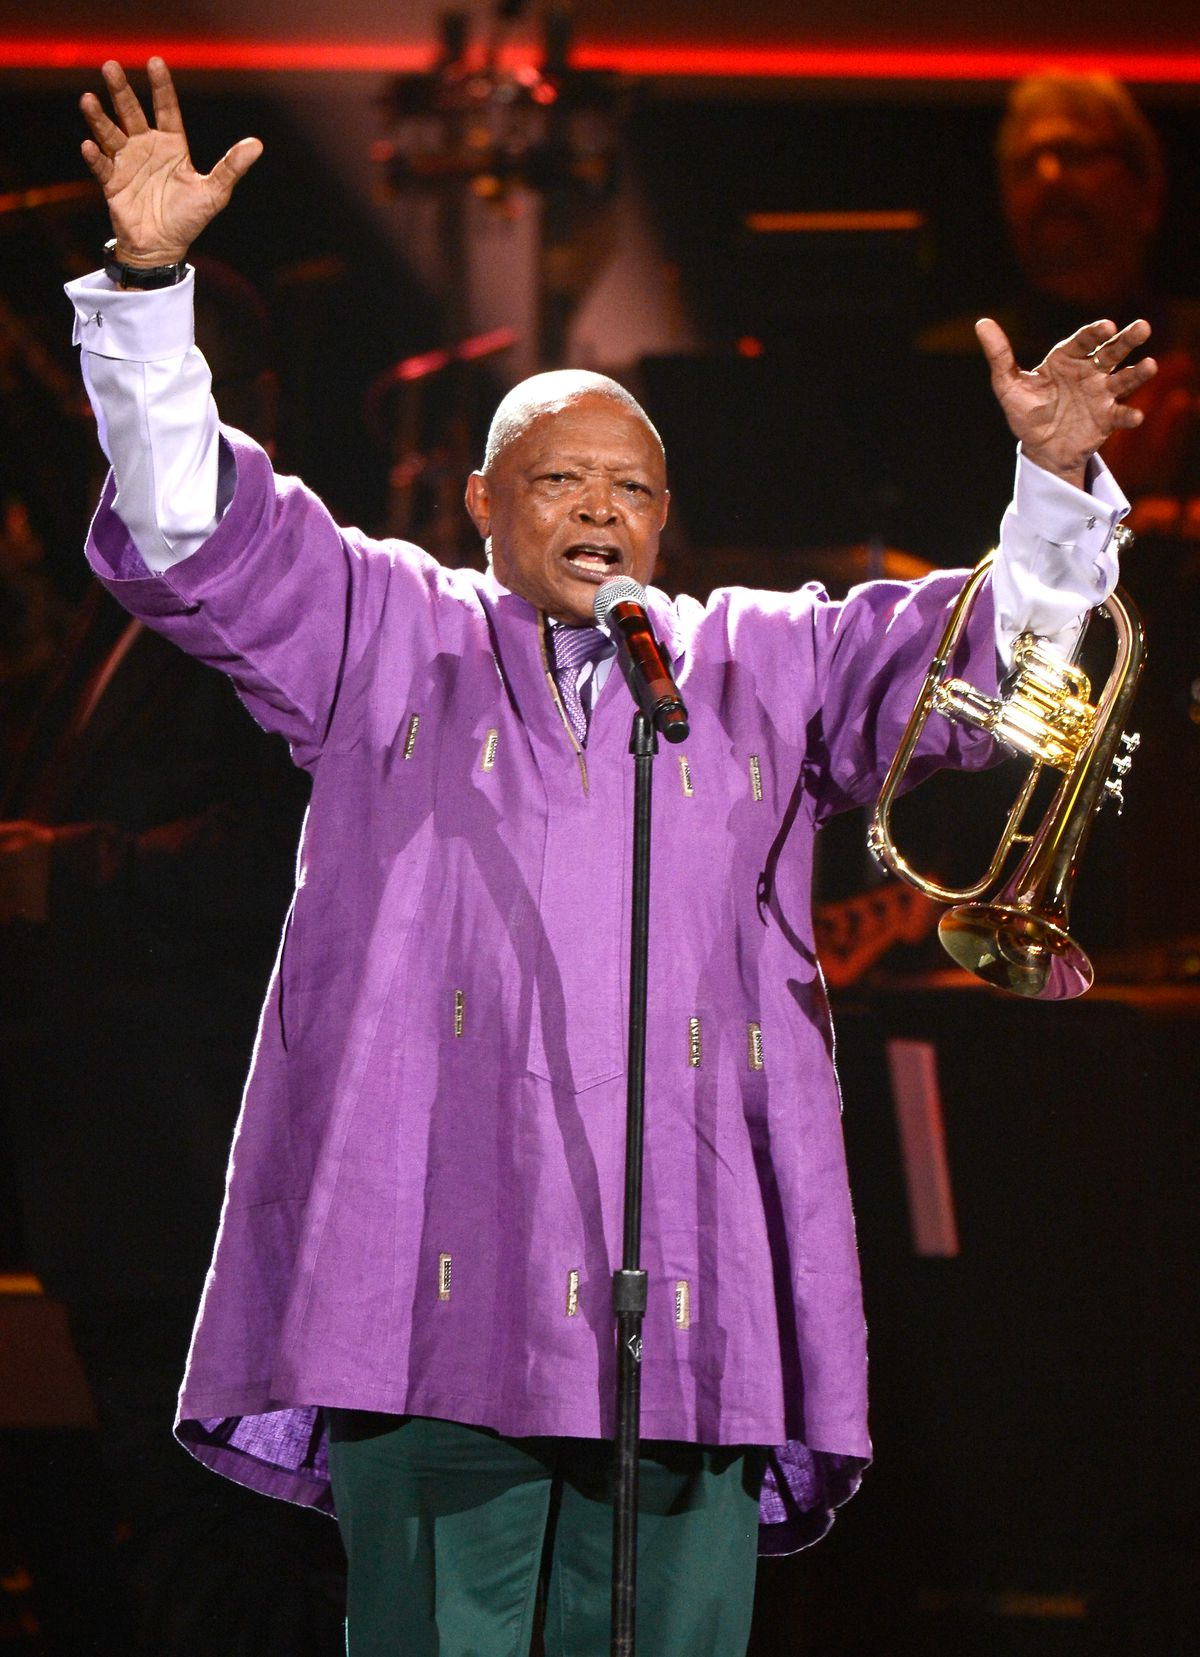 Musician Hugh Masekela performs onstage at the The 55th Annual Grammy Awards at Nokia Theatre in 2013 in Los Angeles.